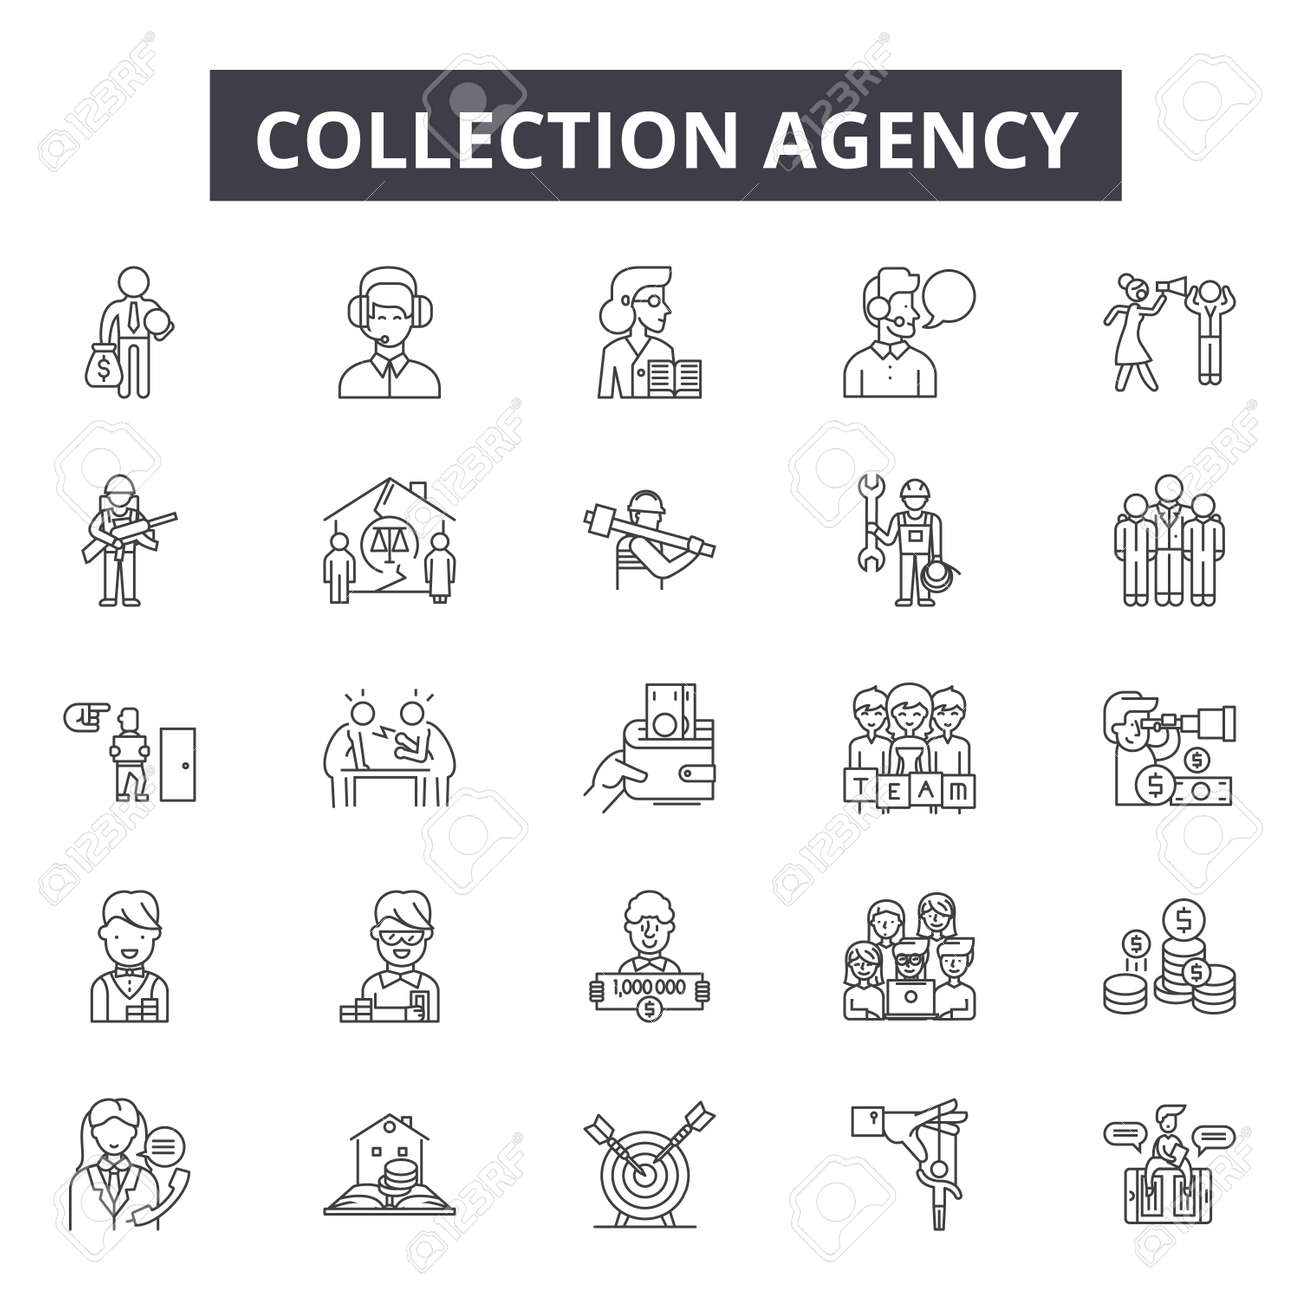 Collection agency line icons for web and mobile. Editable stroke signs. Collection agency outline concept illustrations - 119391758